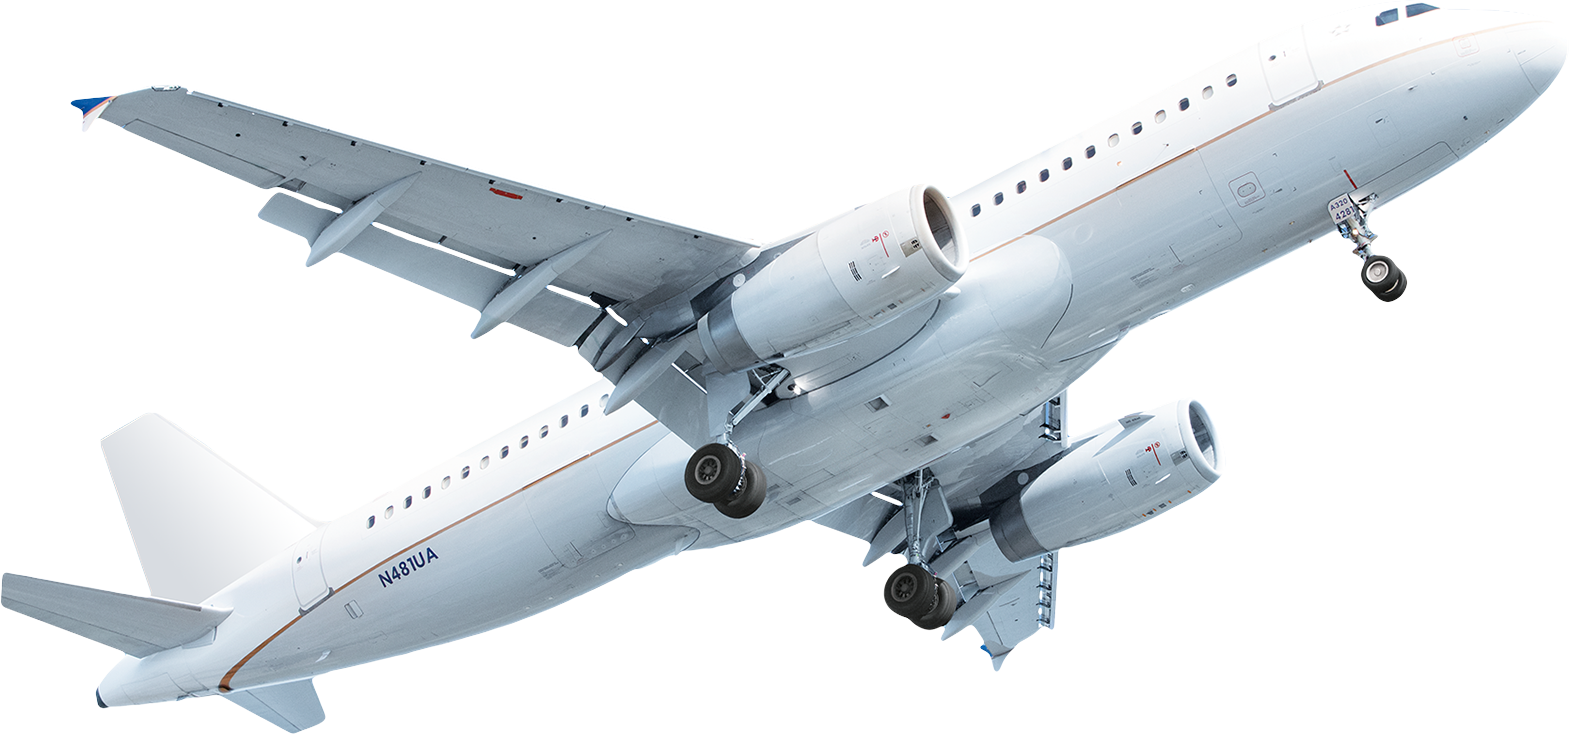 Air plane png. Planes images free download